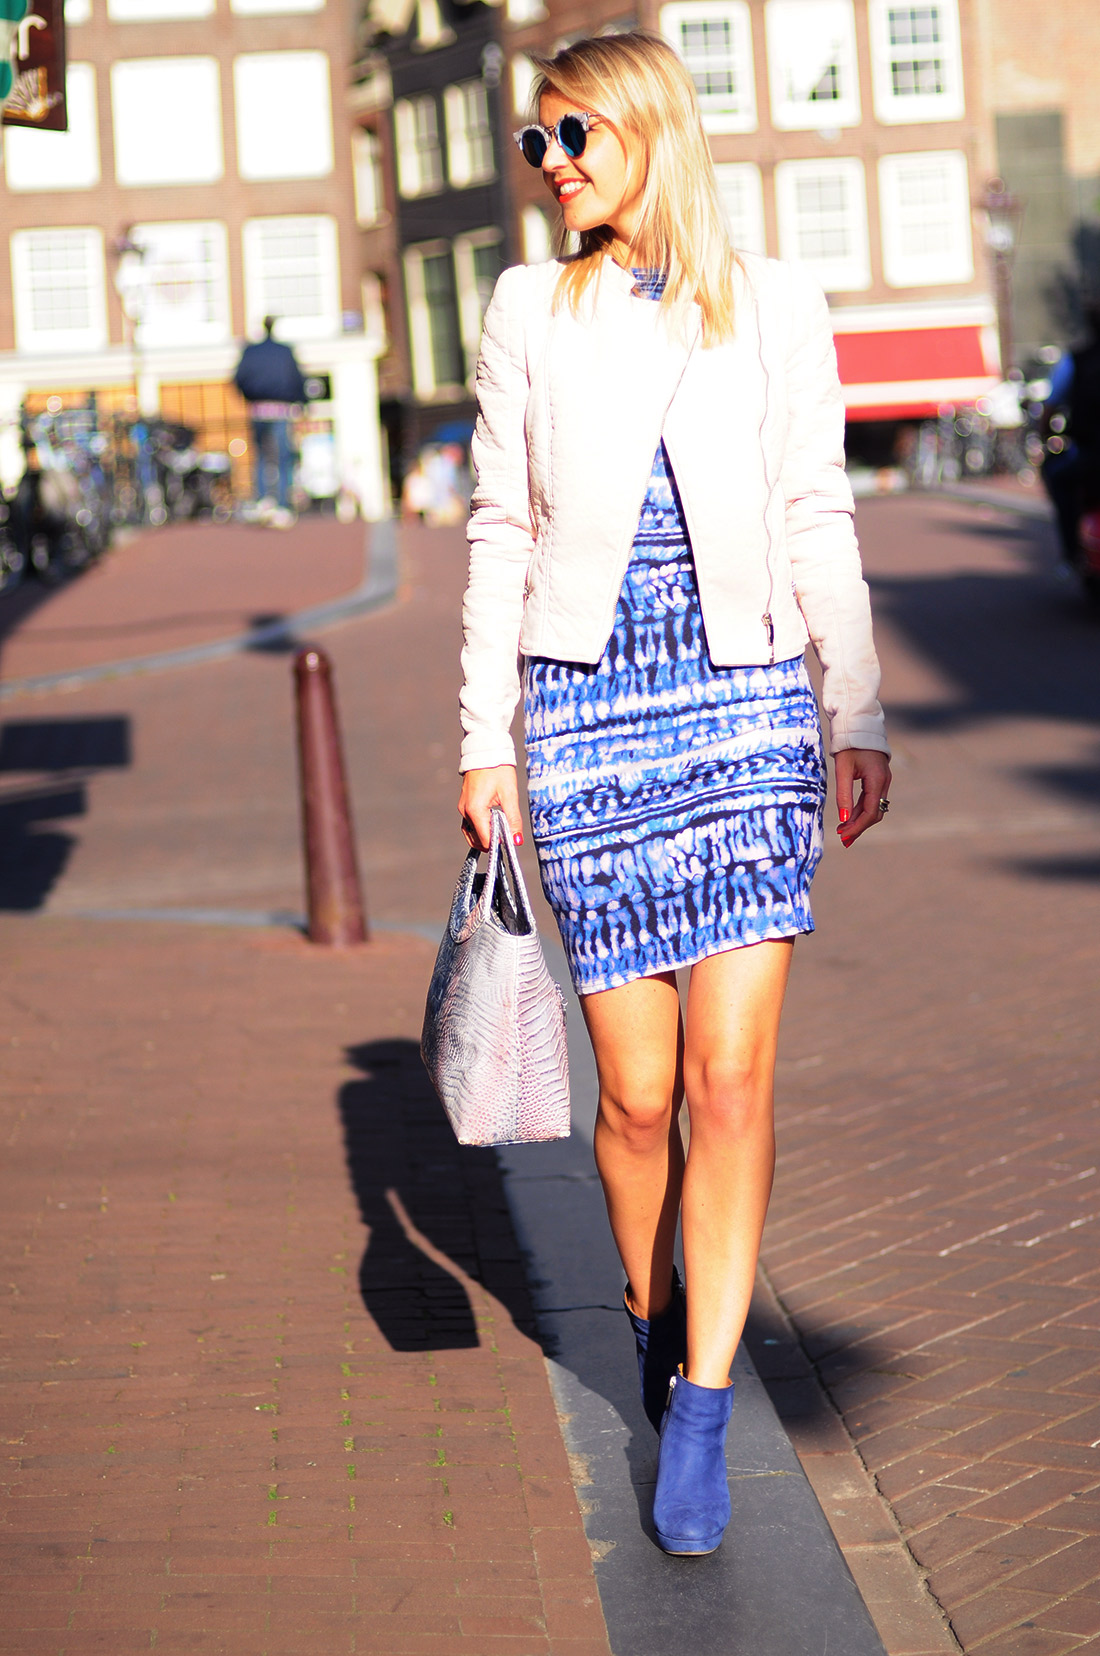 Bag-at-you---Fashion-blog---Pink-and-blue-bag,-dress-and-jacket